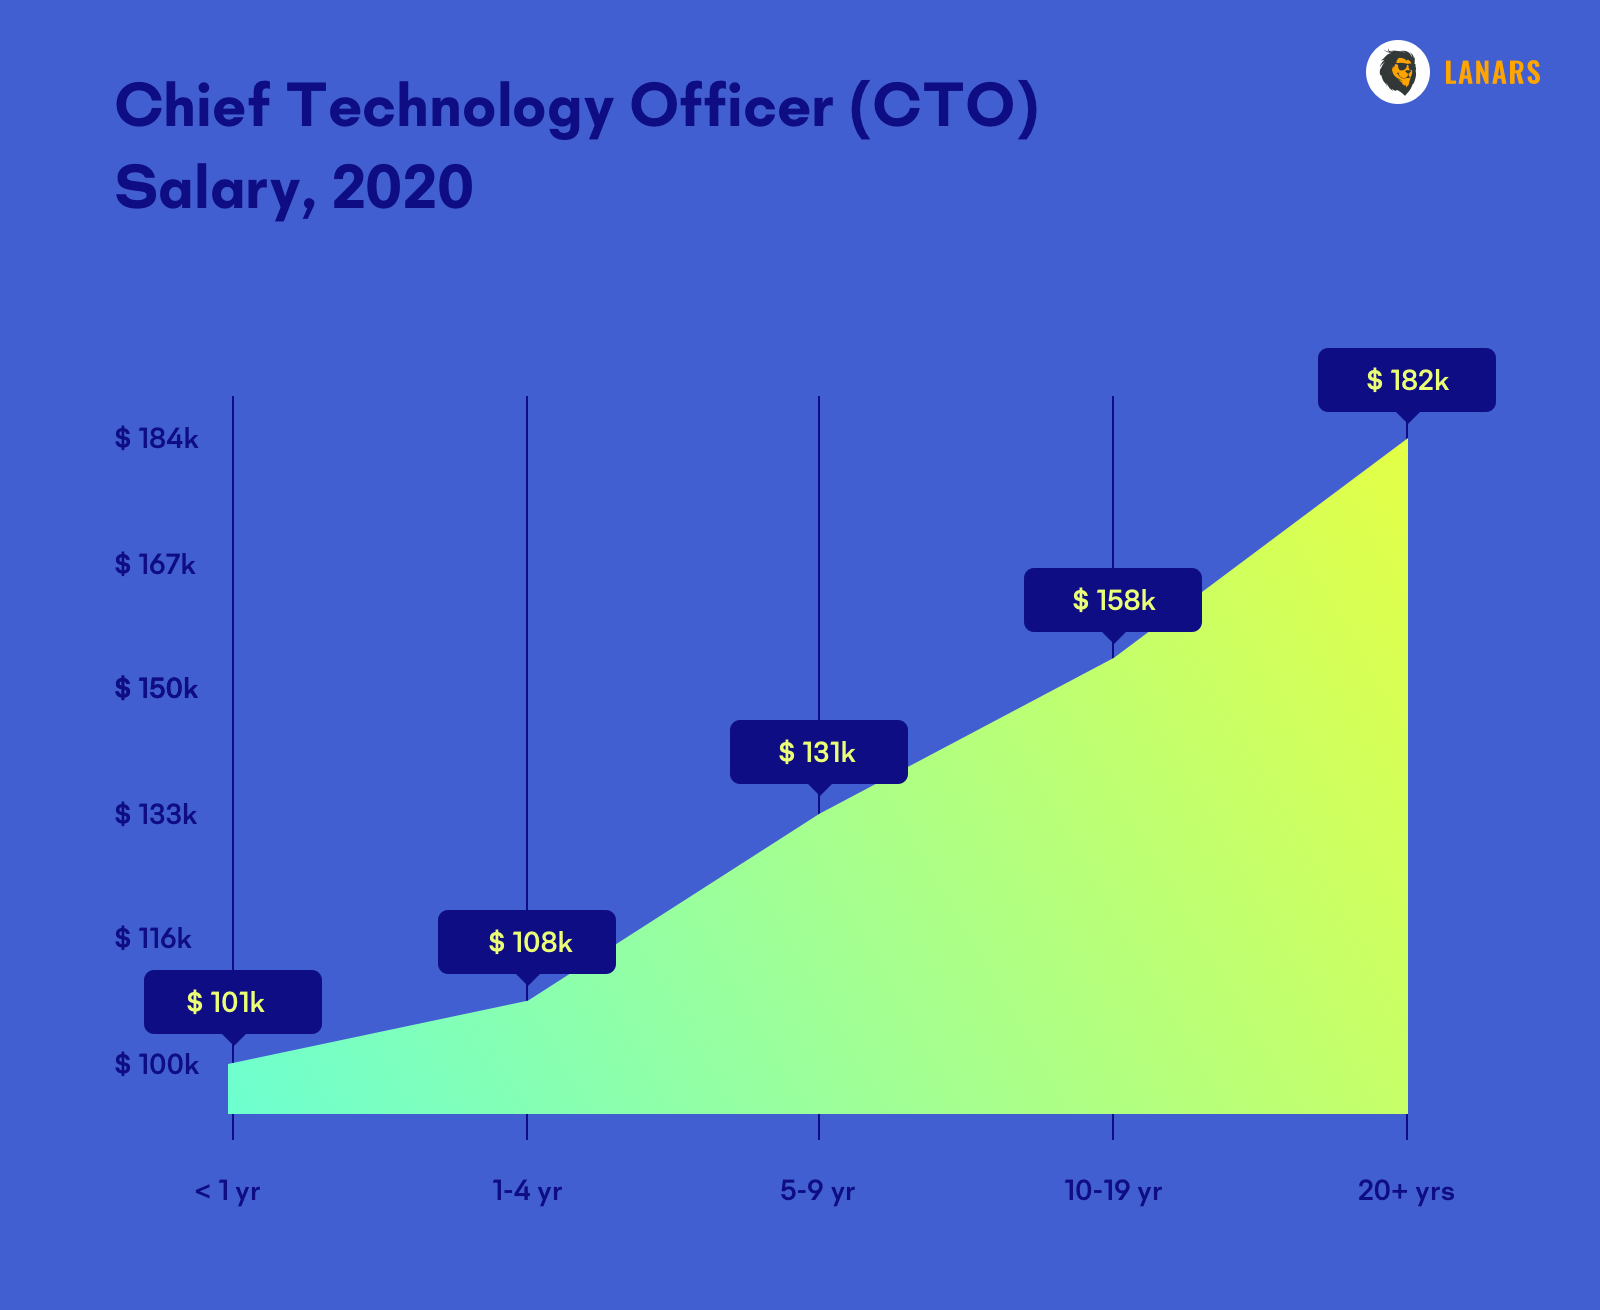 Chief Technology Officer (CTO) Salary, 2020